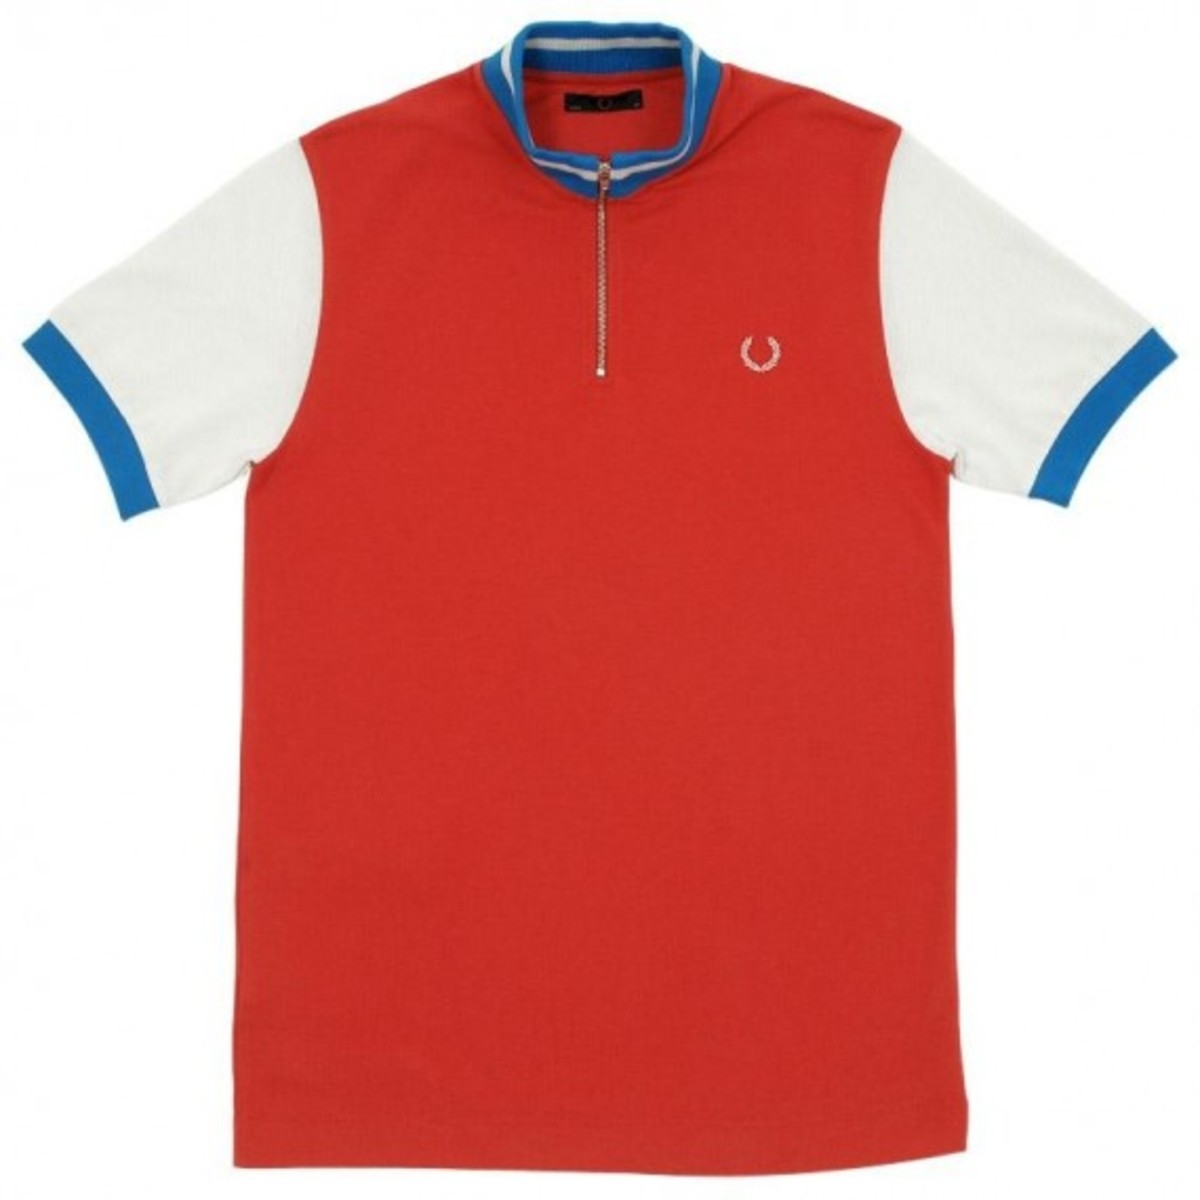 fred-perry-laurel-wreath-blank-canvas-cycling-28